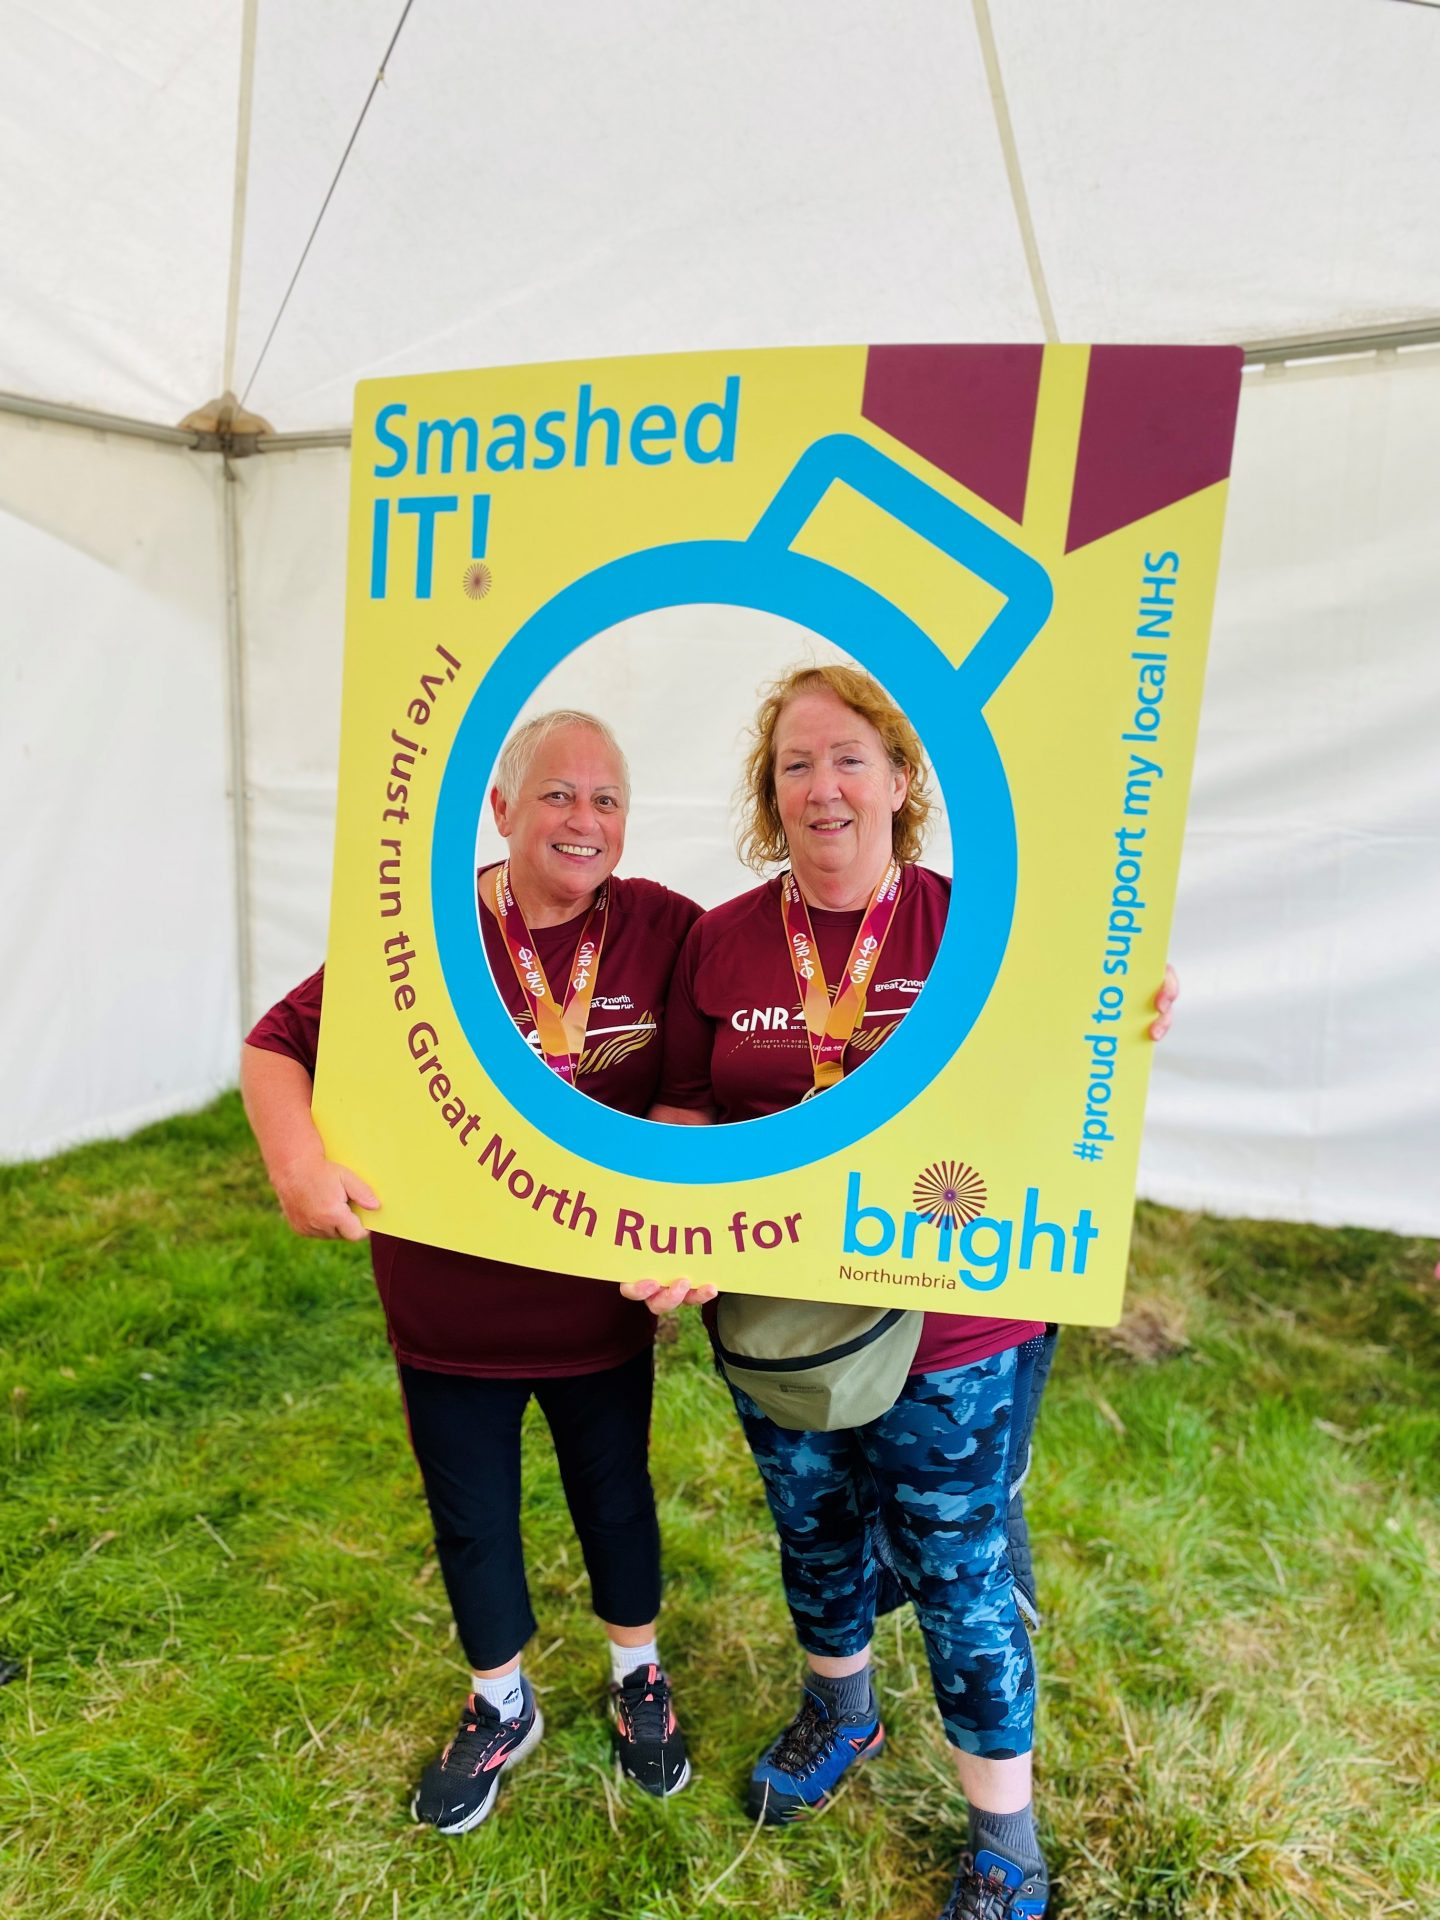 A huge well done to Yvonne & Margaret